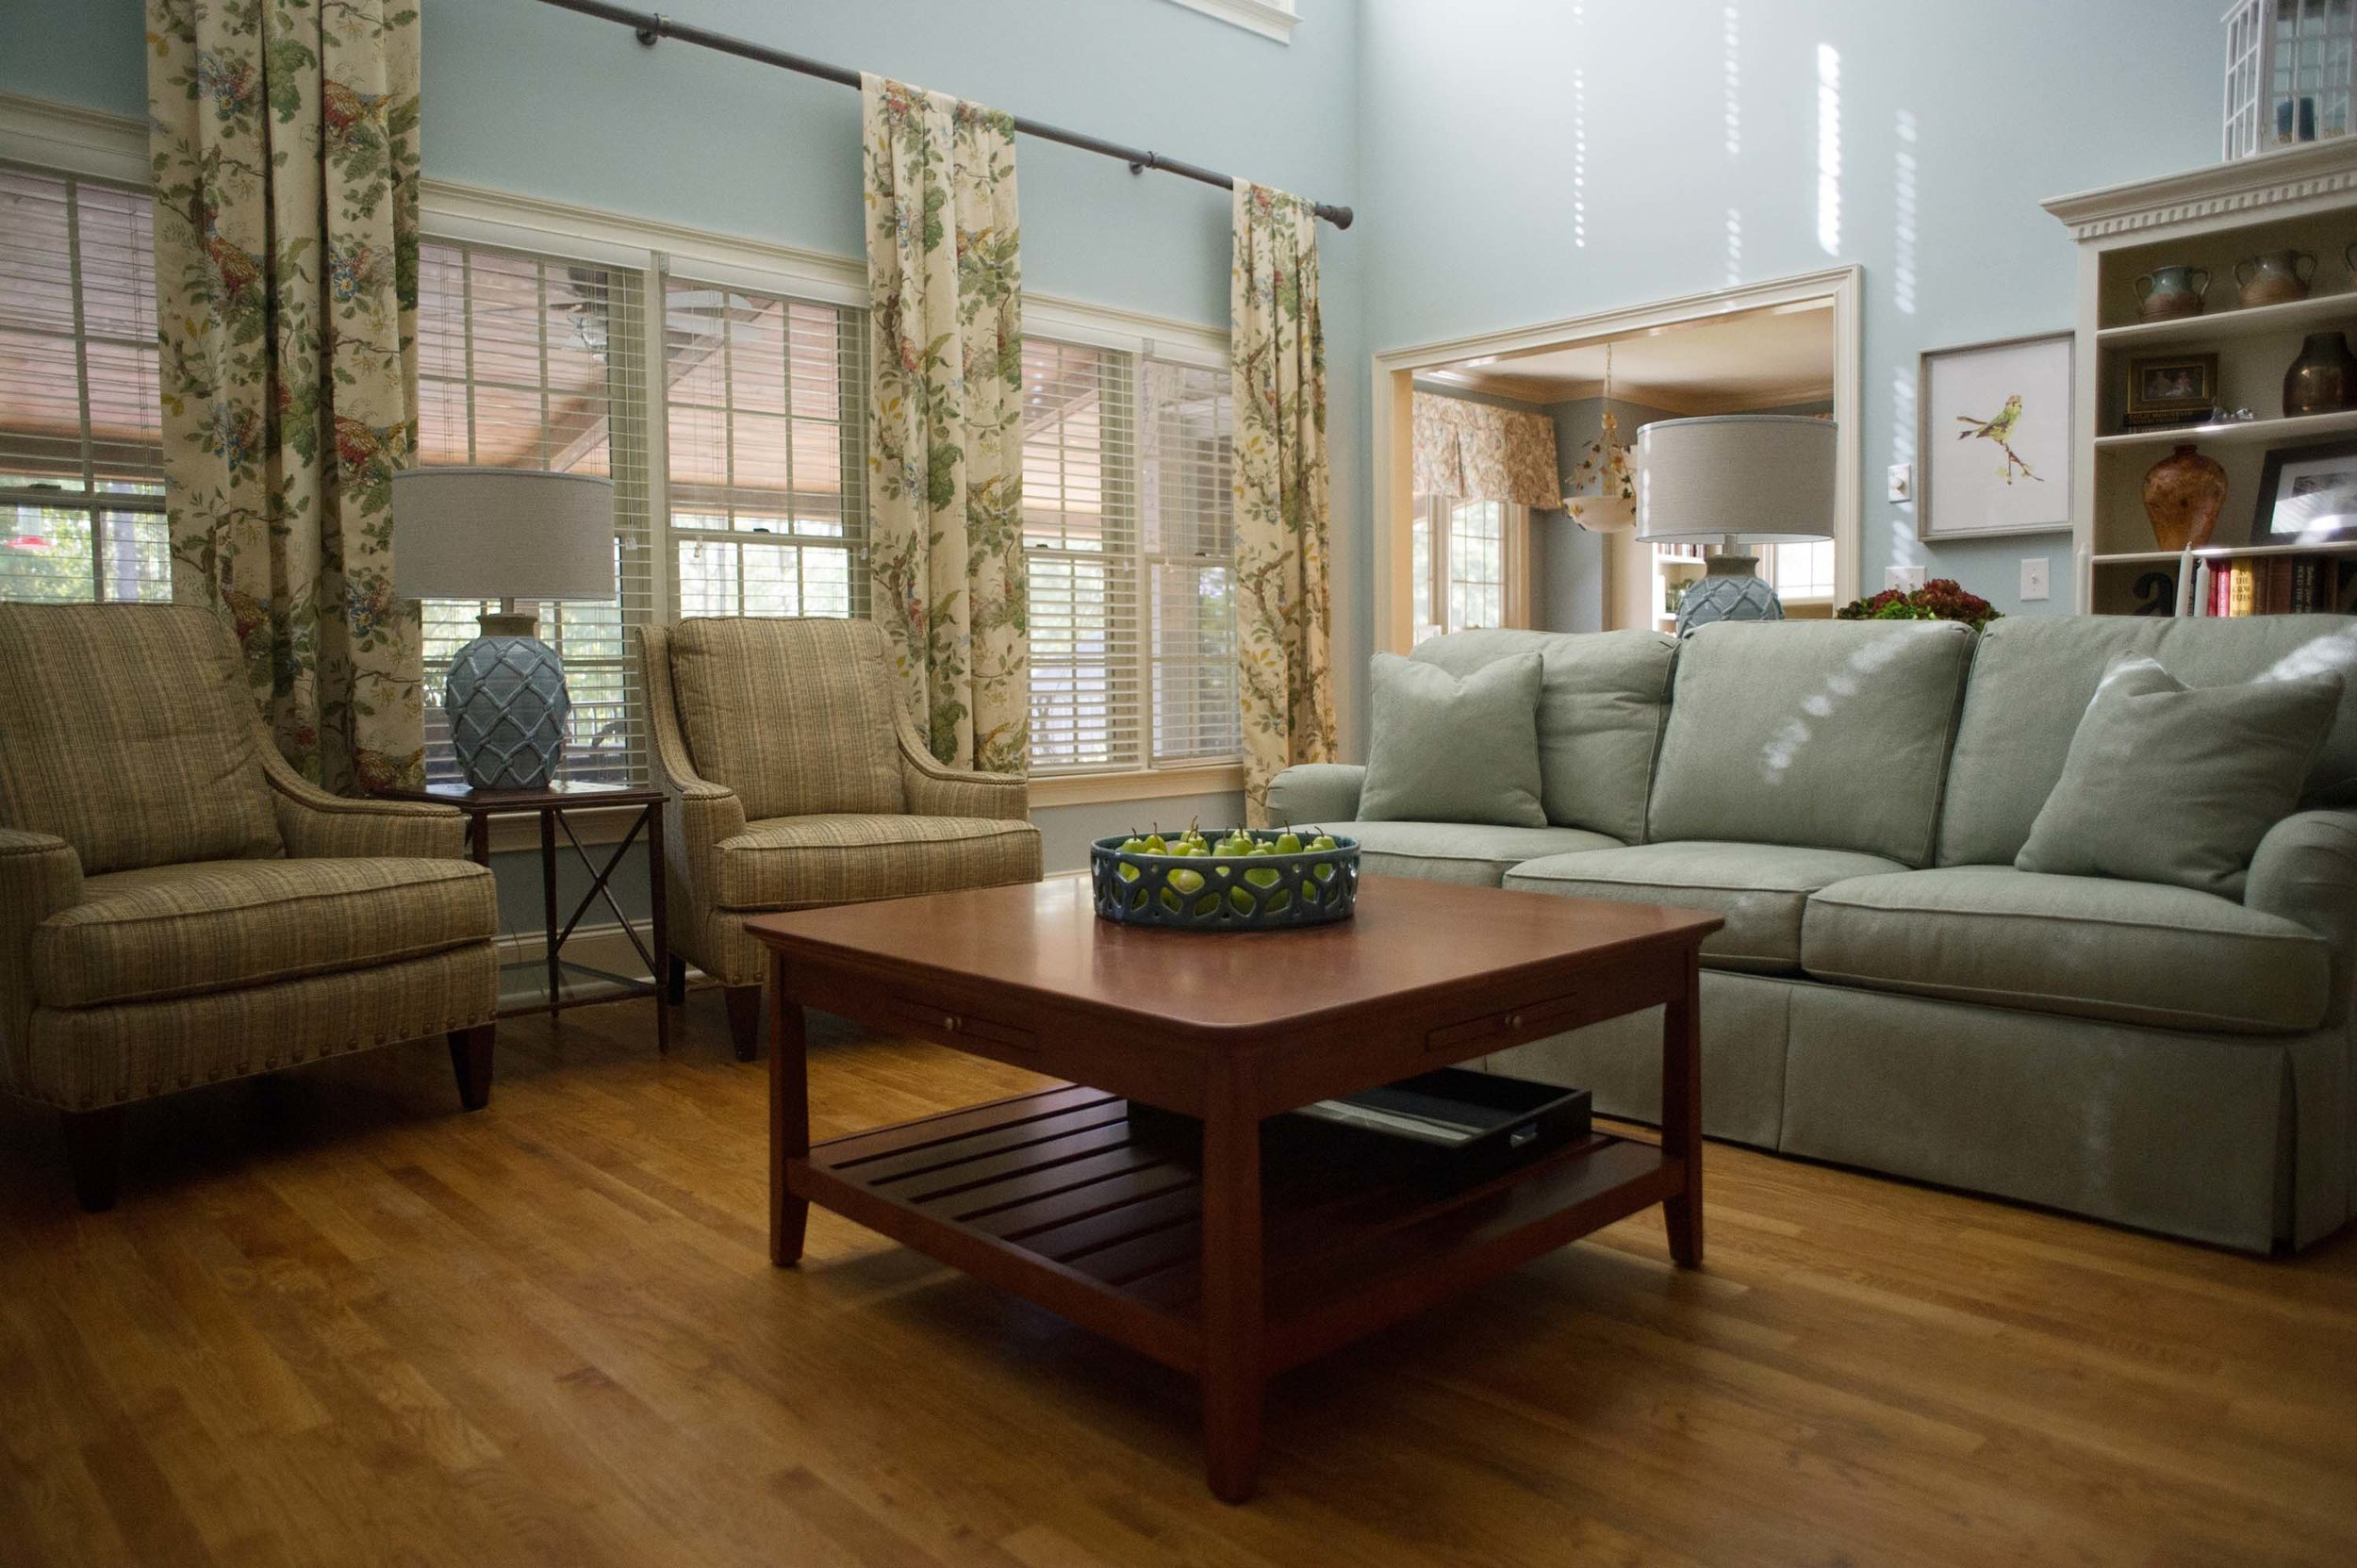 Living room with hardwood floor, wooden center table, sofa and armchair